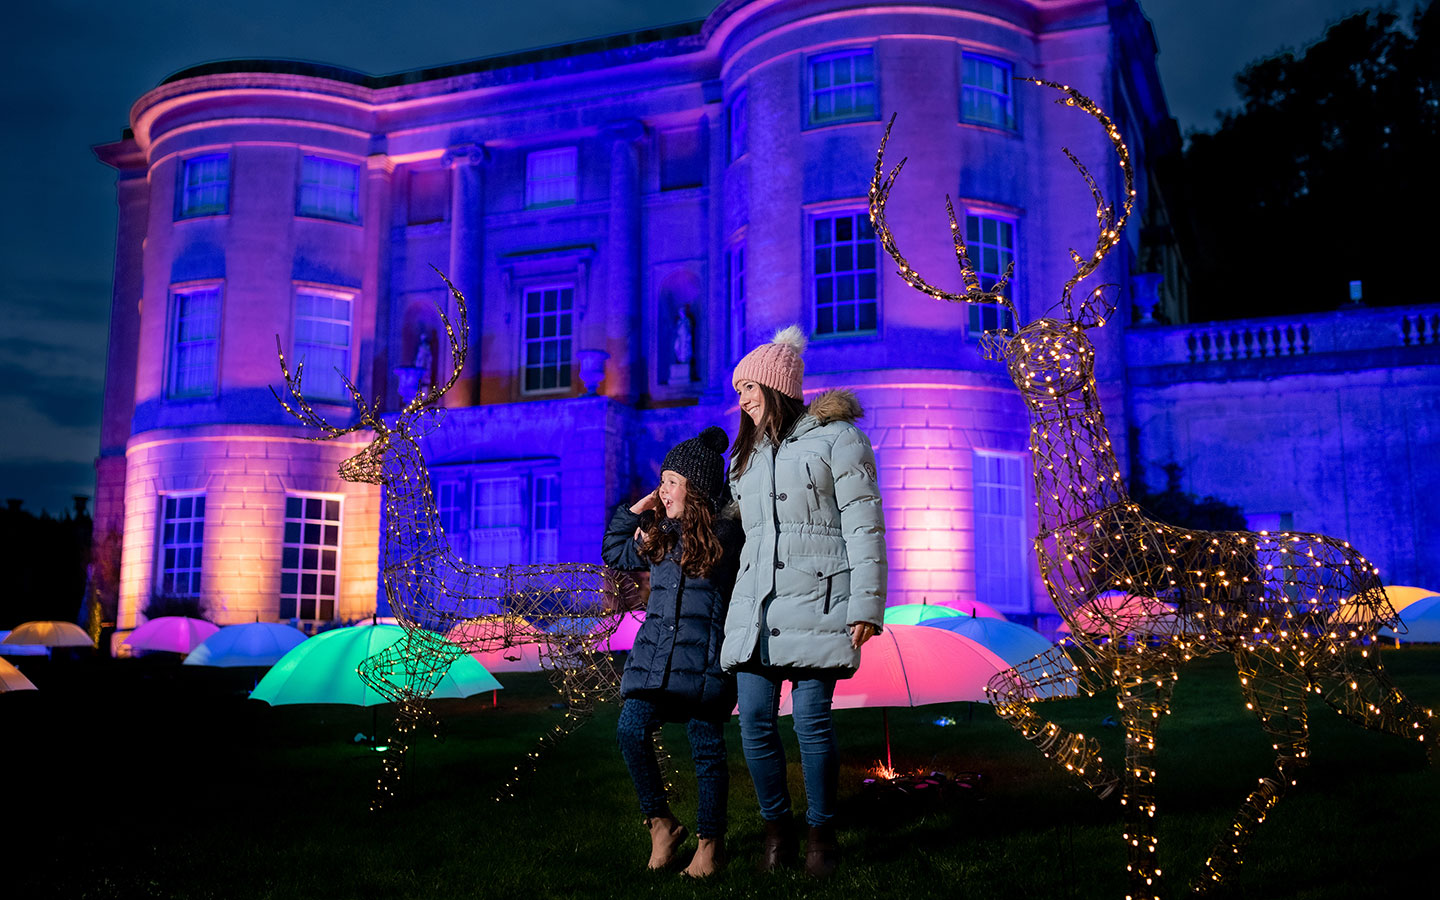 The Enchanted Garden of Light at Bath's American Museum [photo credit American Museum]